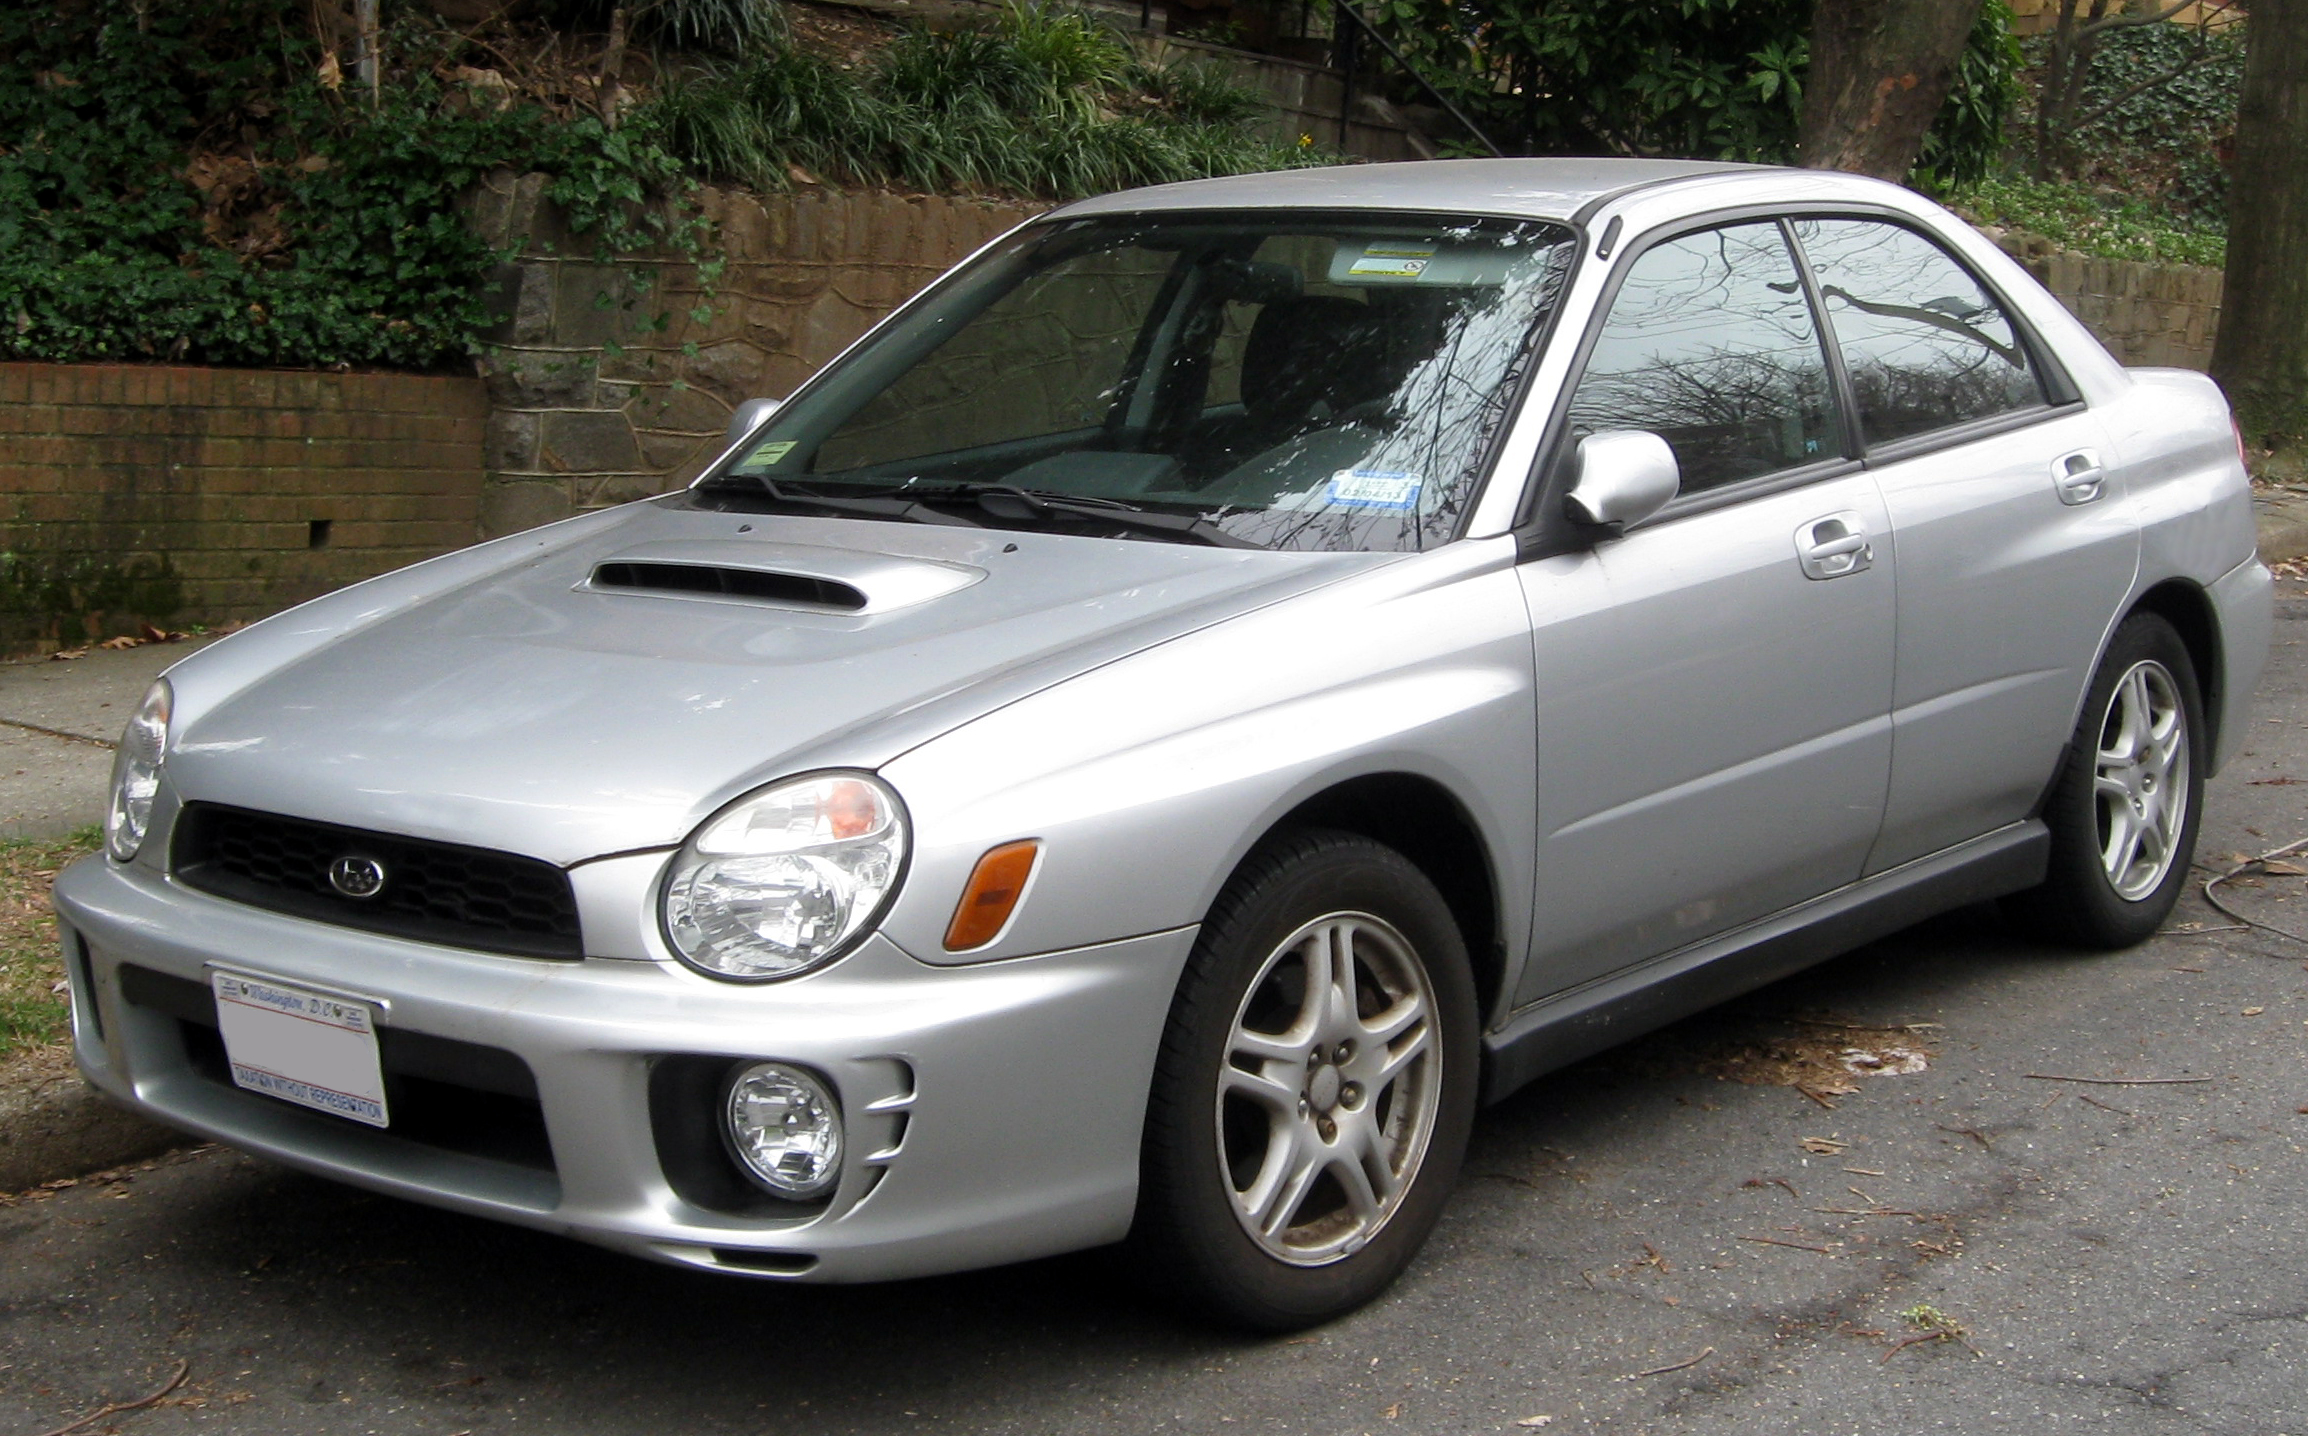 Did The 2011 2012 2013 Or 2014 Subaru Wrx Wagon Come In